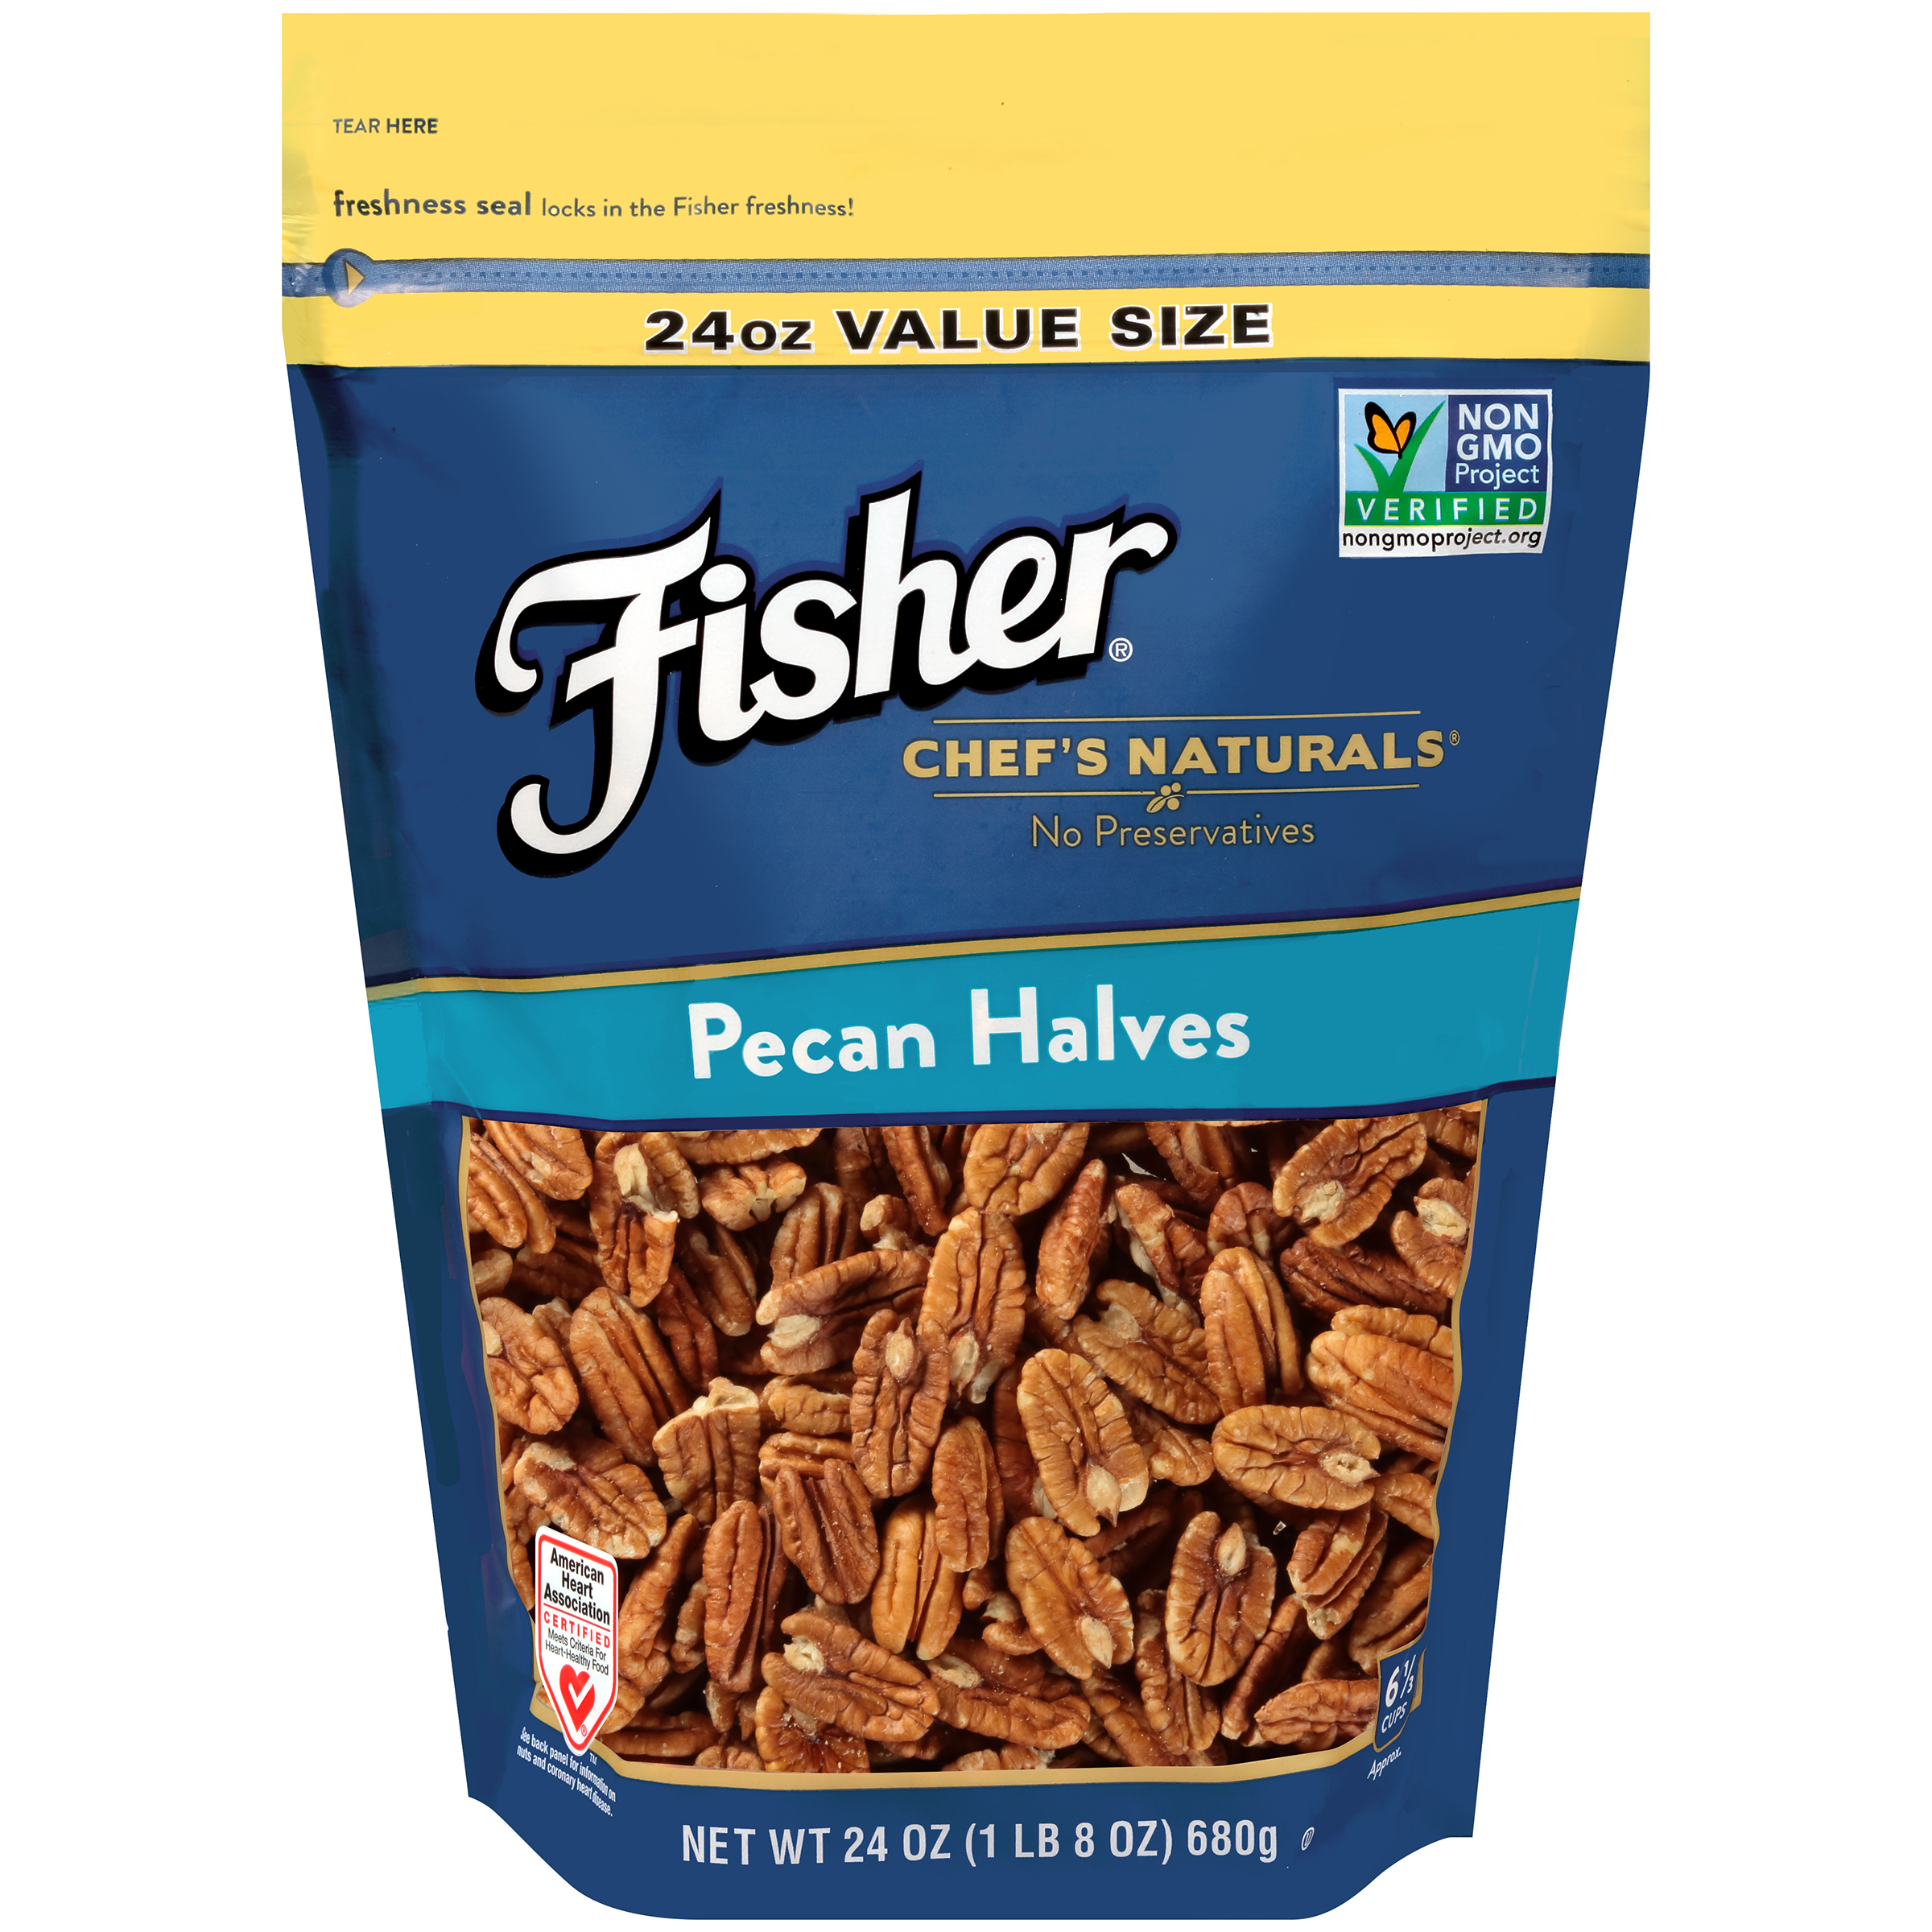 (2 Pack) Fisher Chef's Naturals Pecan Halves, Non-GMO, 24 oz